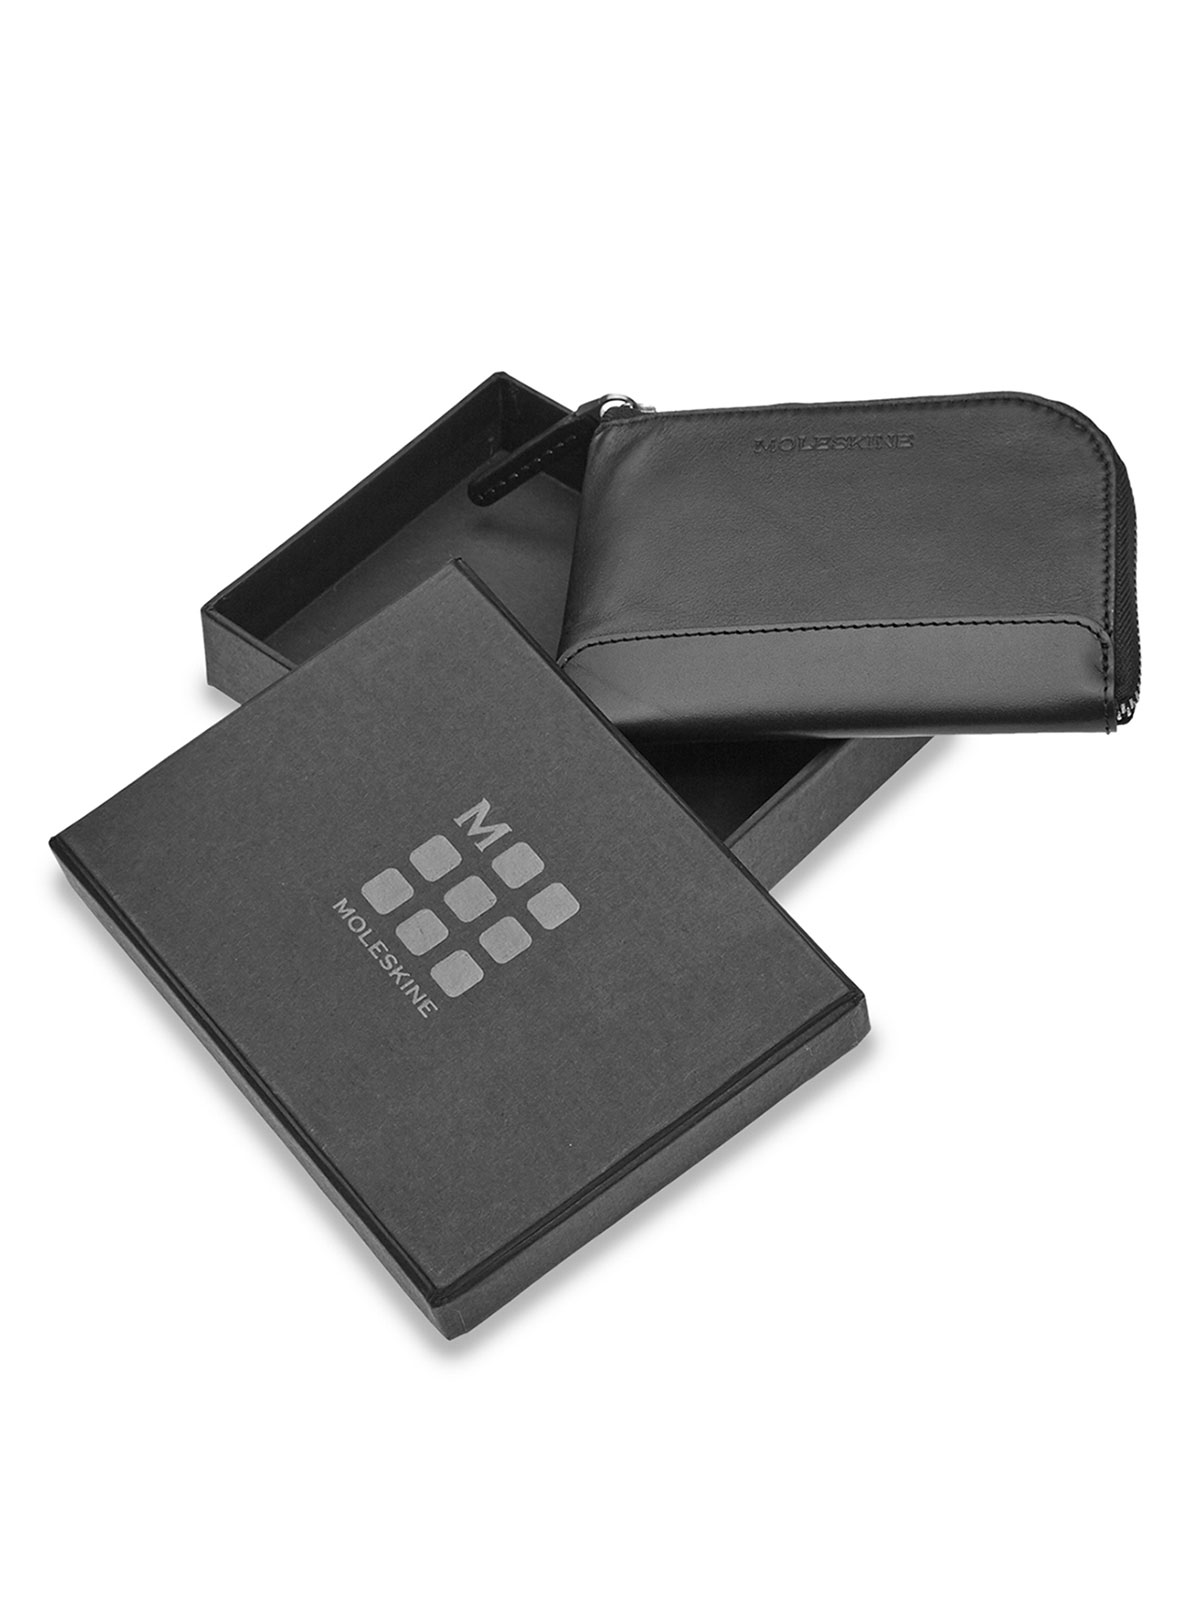 Picture of Moleskine | Wallet Classic Lth Smart Wallet Black